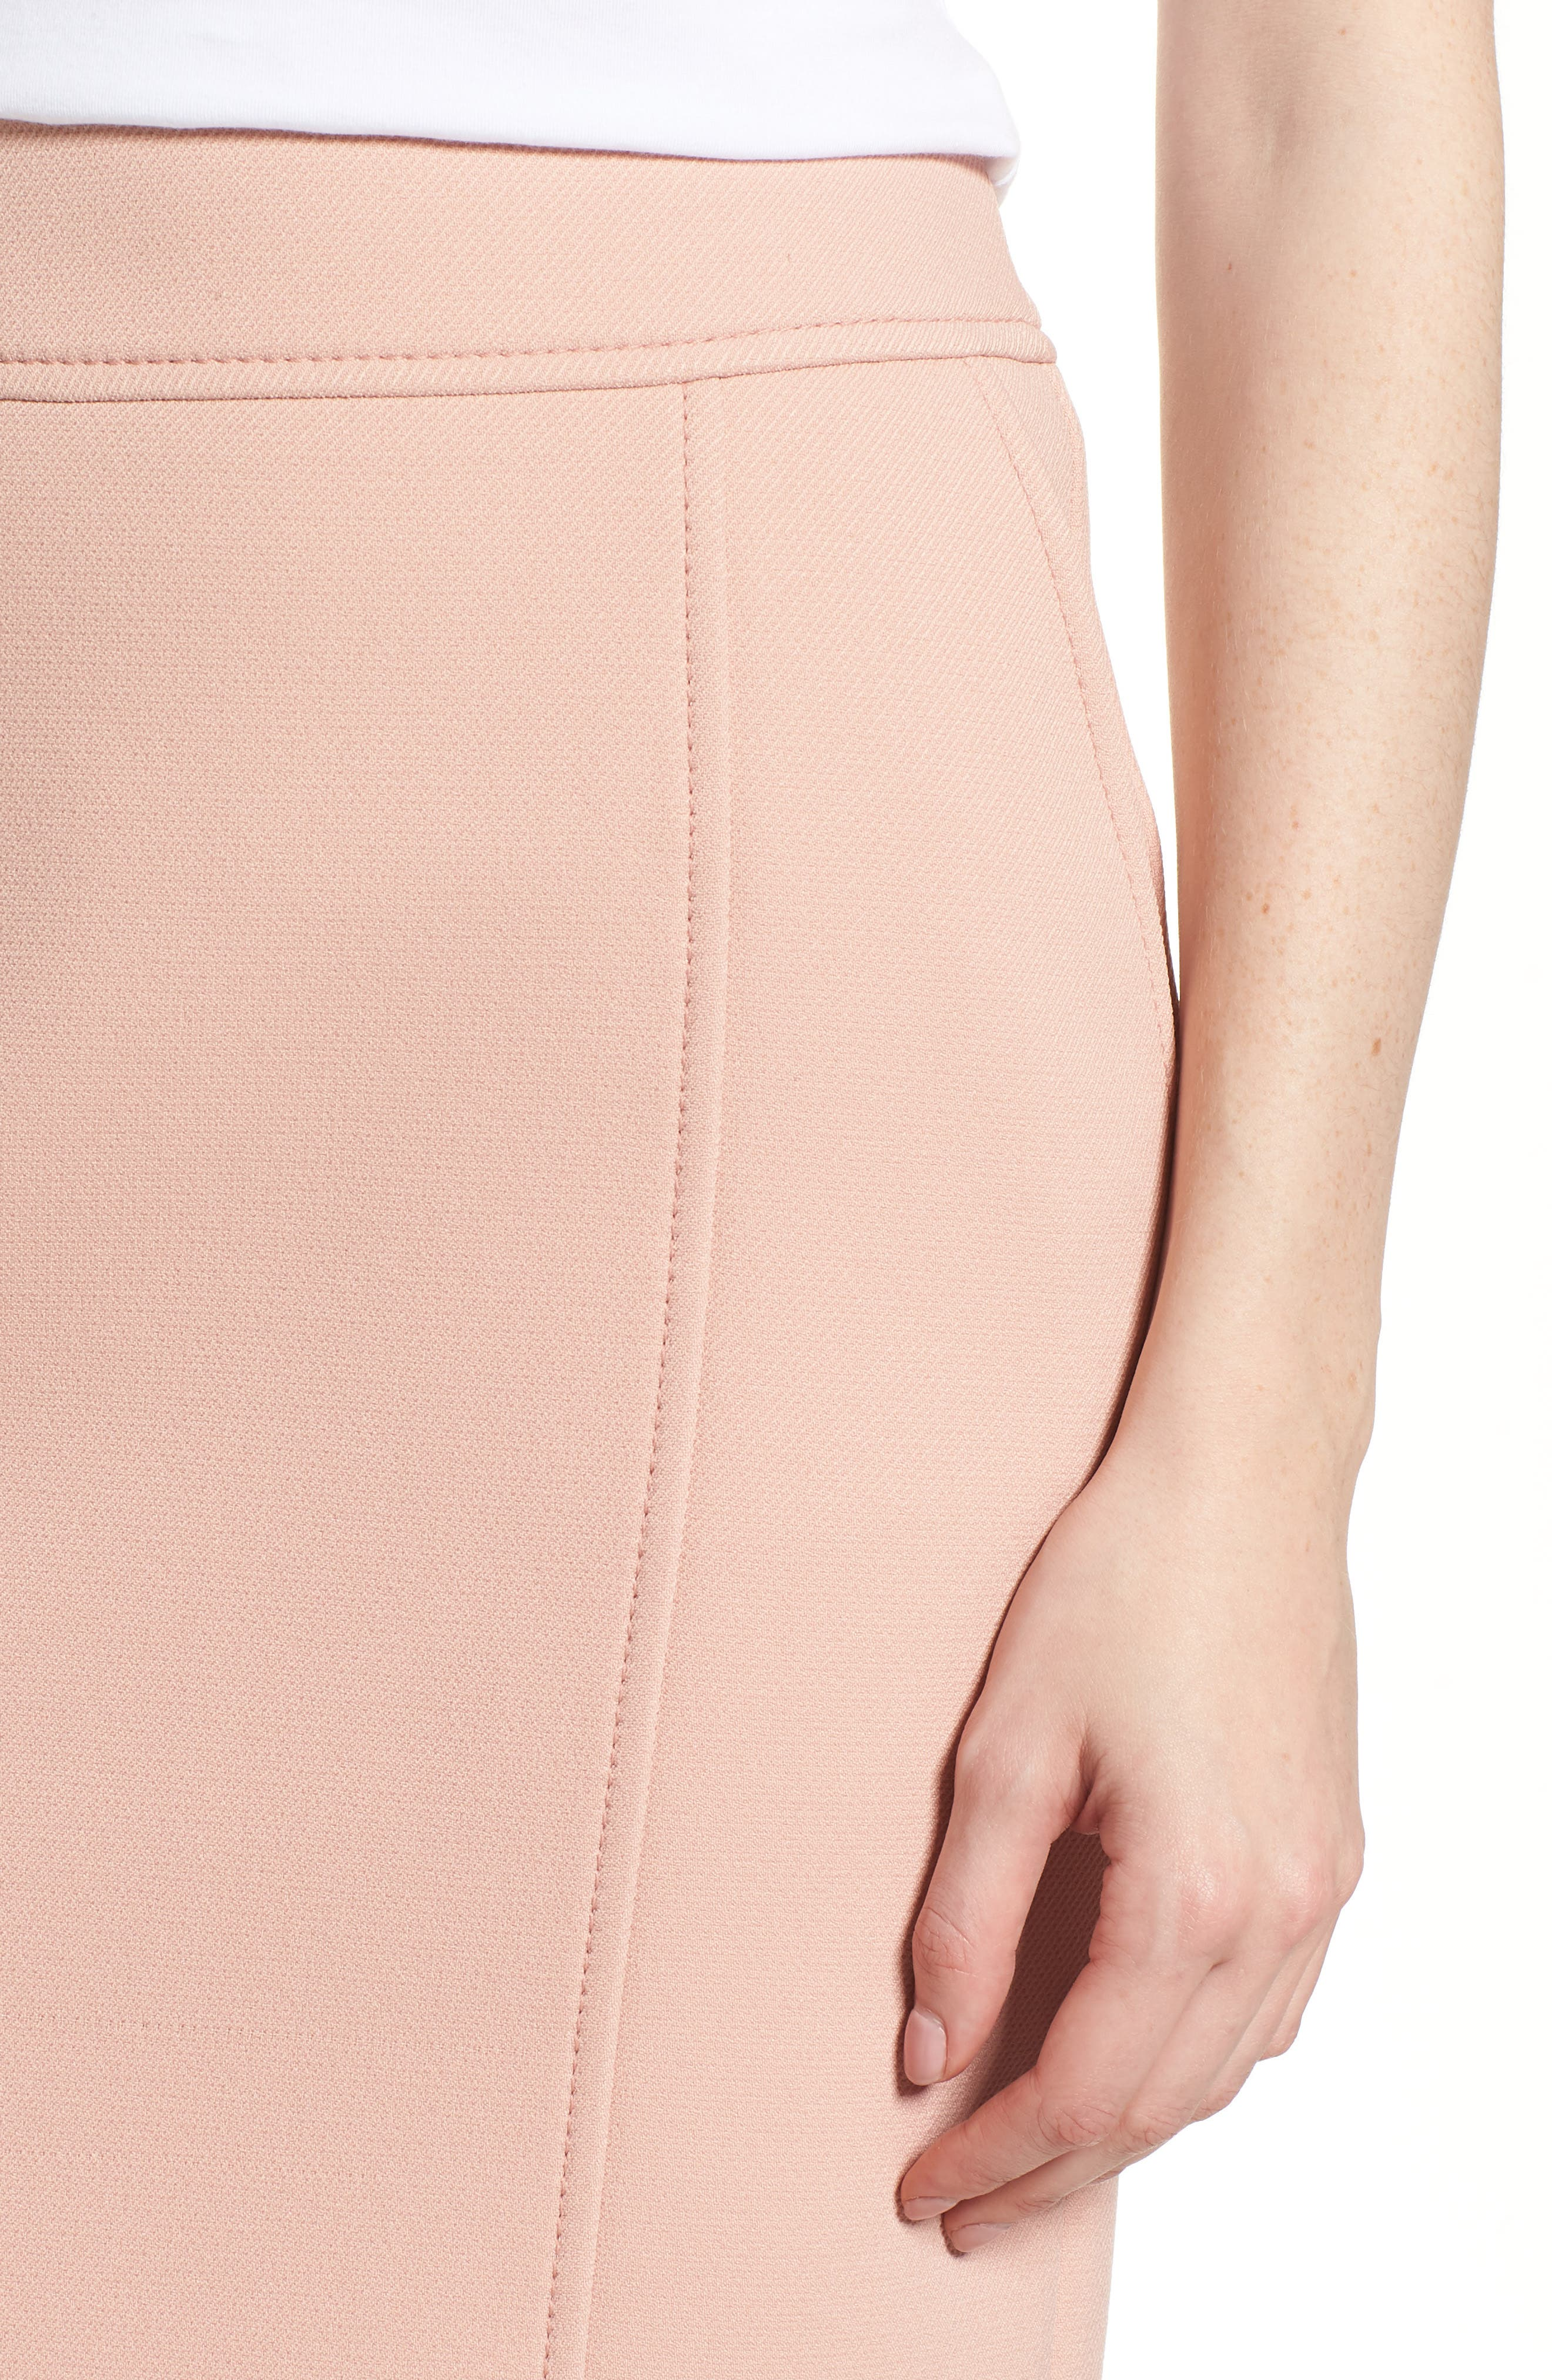 Vuleama Compact Twill Pencil Skirt,                             Alternate thumbnail 4, color,                             Blush